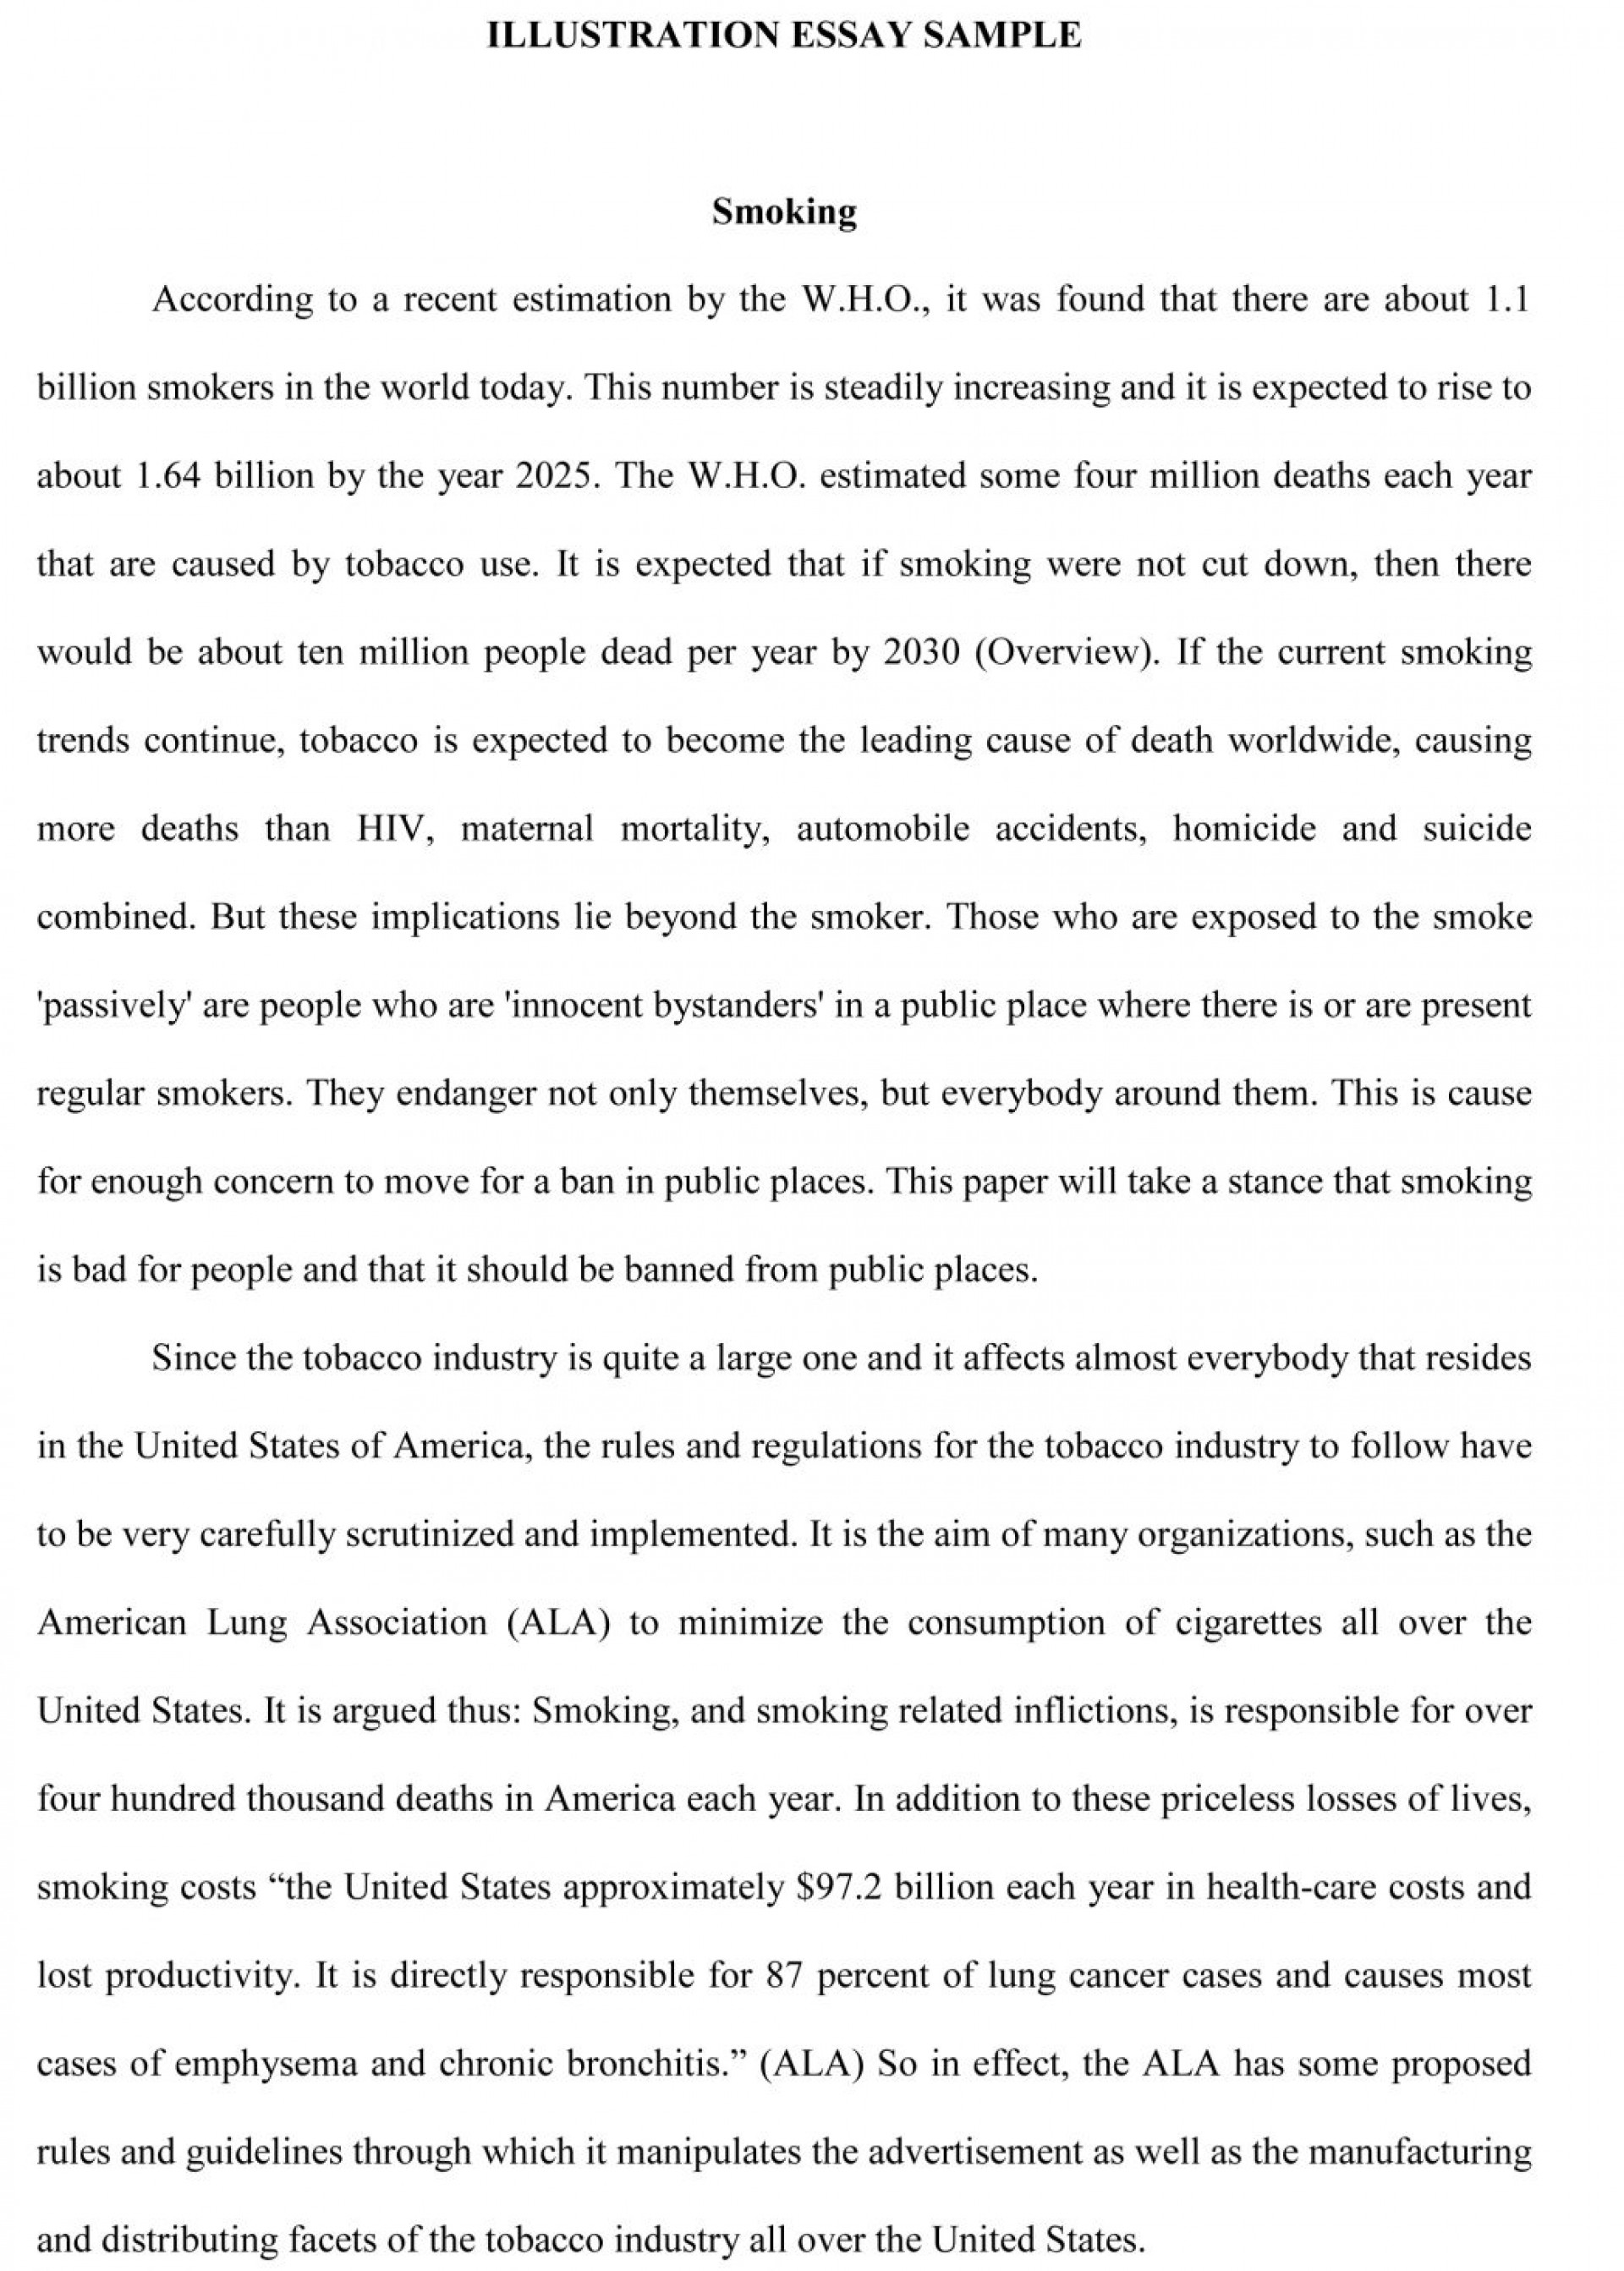 024 Essayle Compare Contrast Topics College Students Descriptive For Illustration Sam Sample Questions Argumentative Research Paper Writing 1048x1466 And Phenomenal Essay Examples Outline Introduction Paragraph 1920